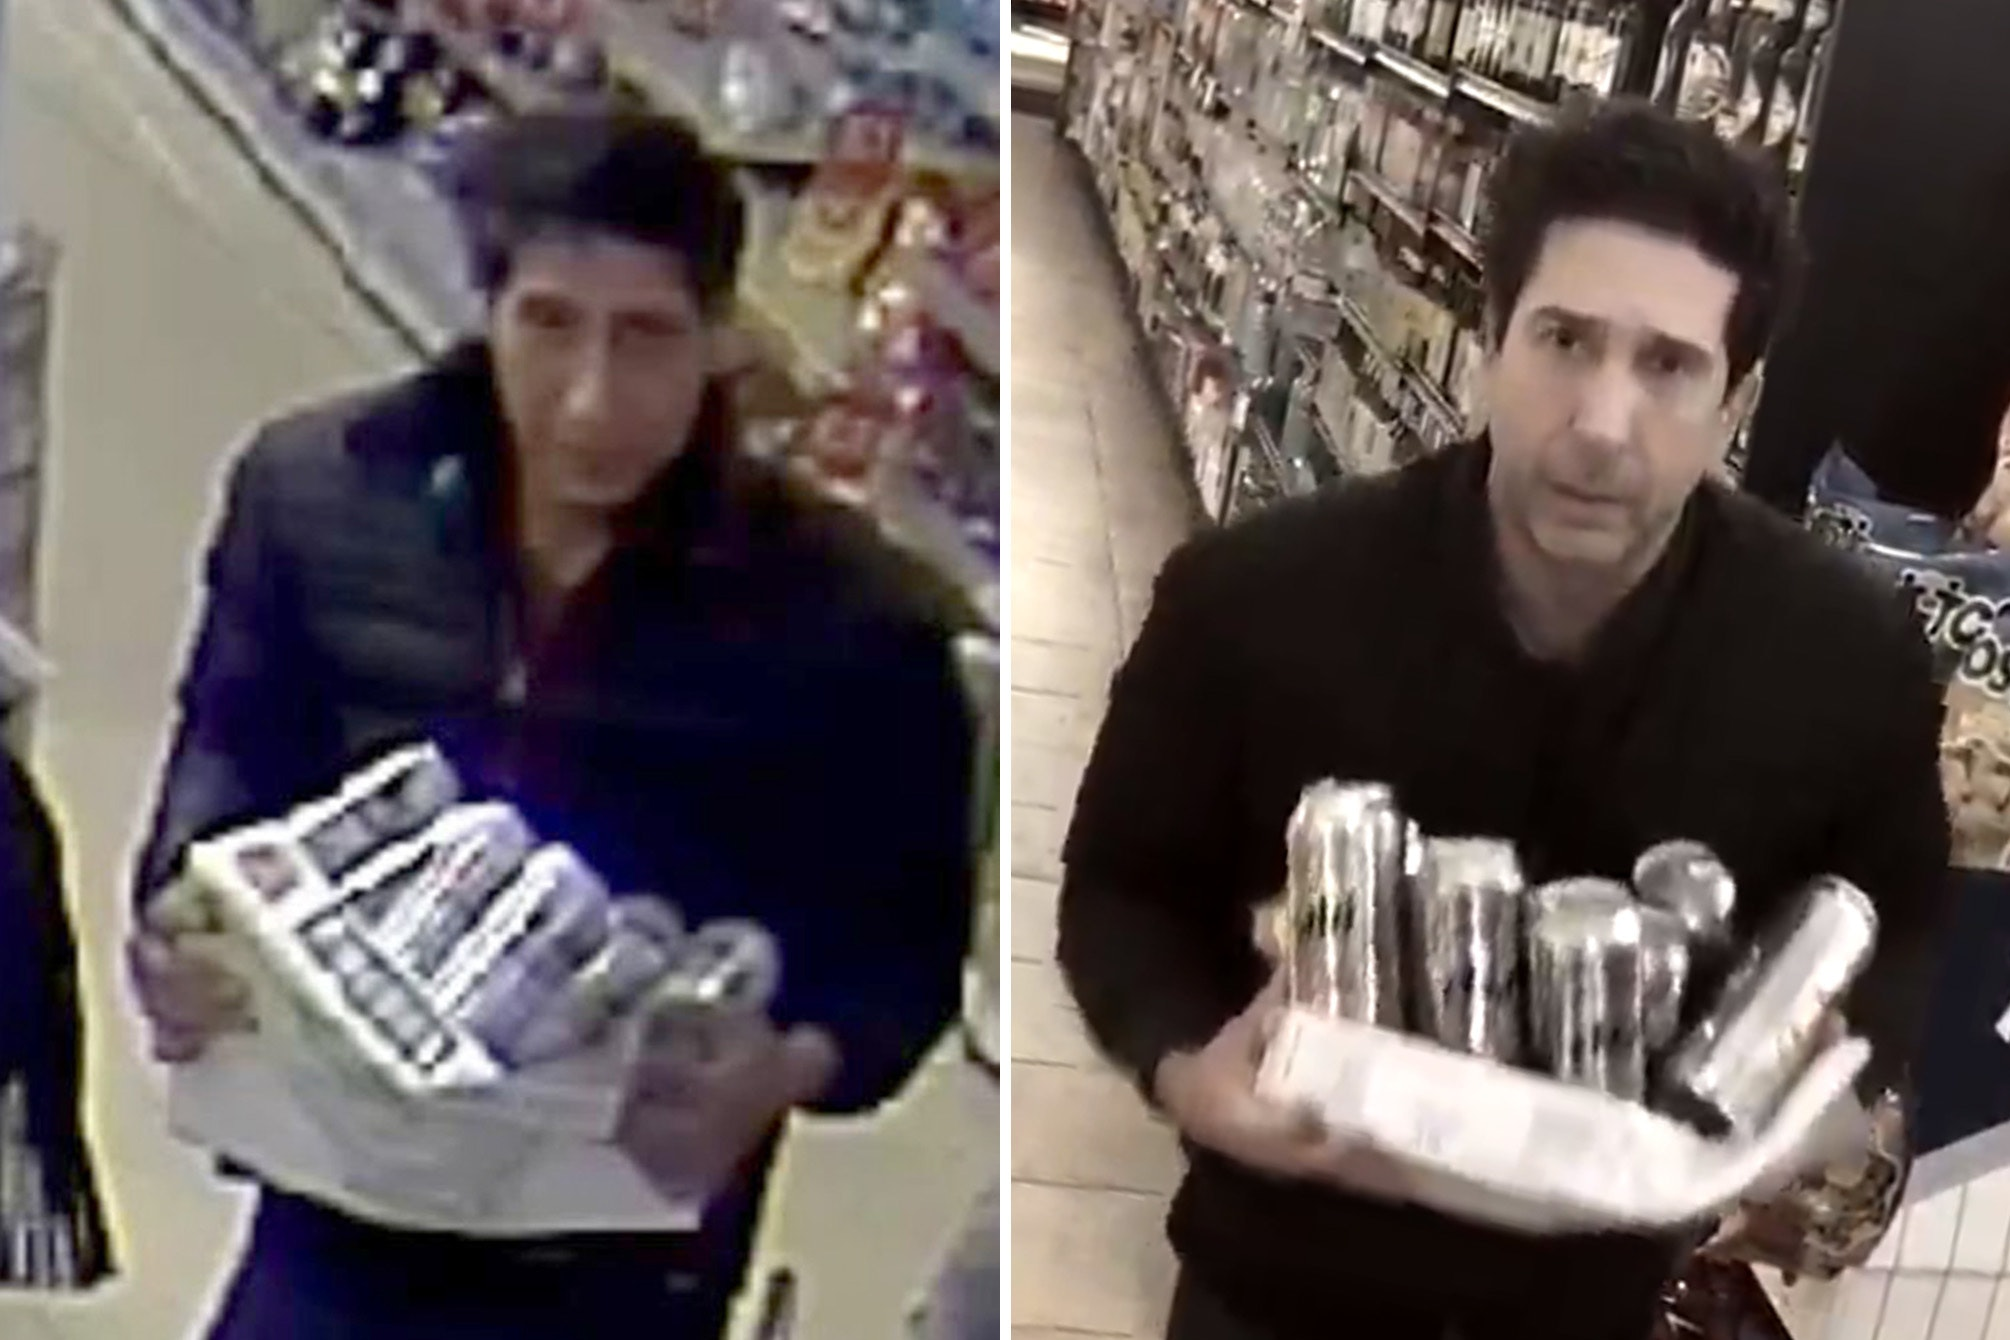 Social media users pointed out the likeness to Schwimmer's (right) character Ross Geller